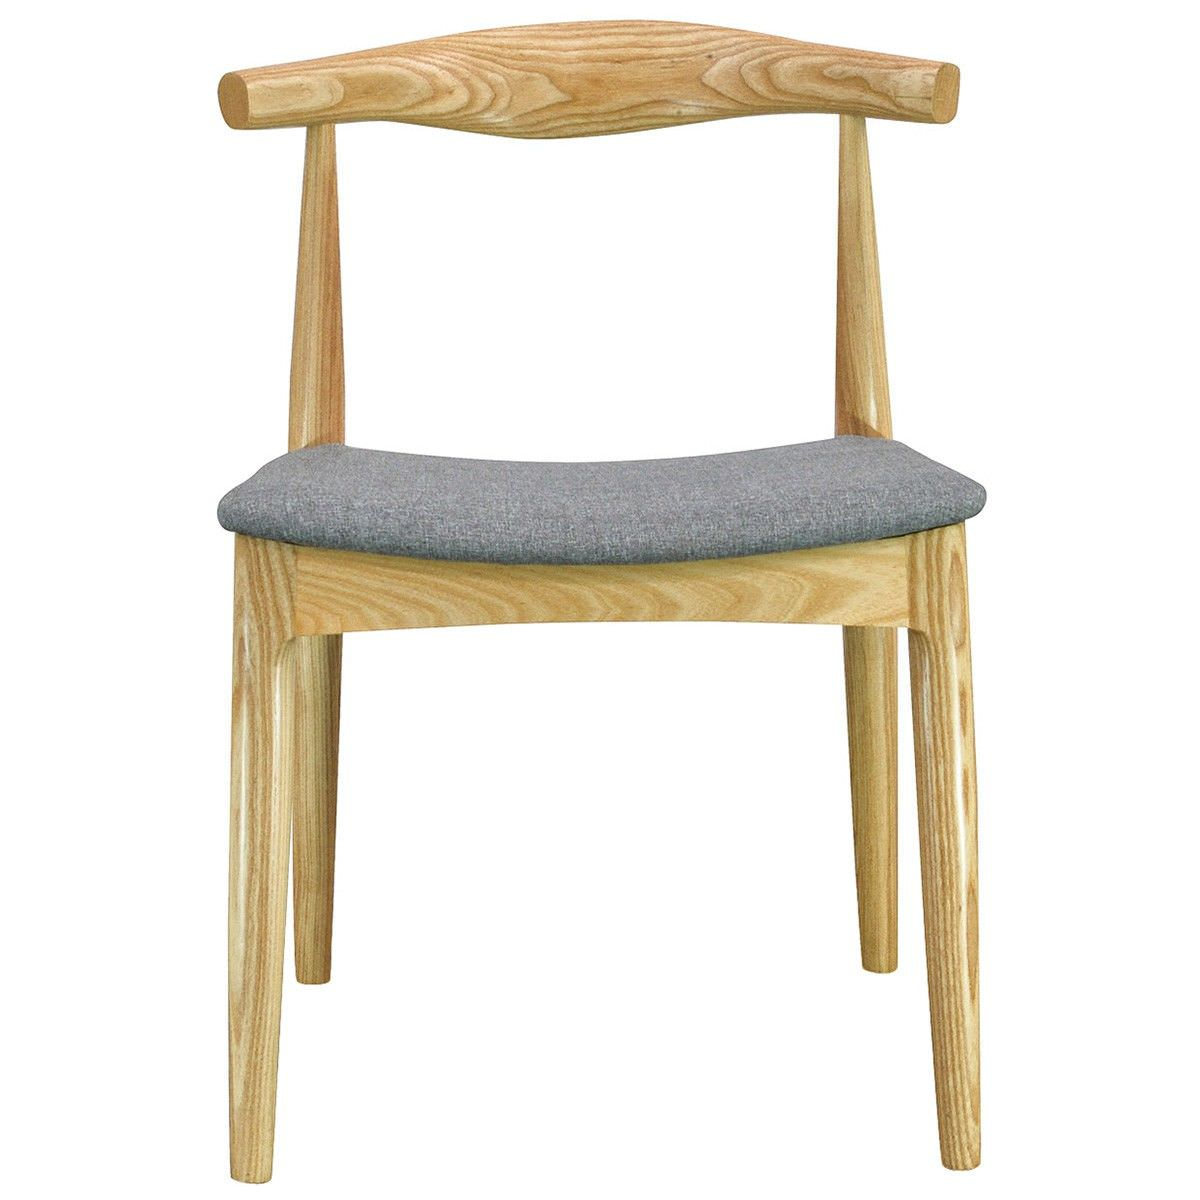 Replica Hans Wegner Elbow Chair with Fabric Seat, Natural / Grey